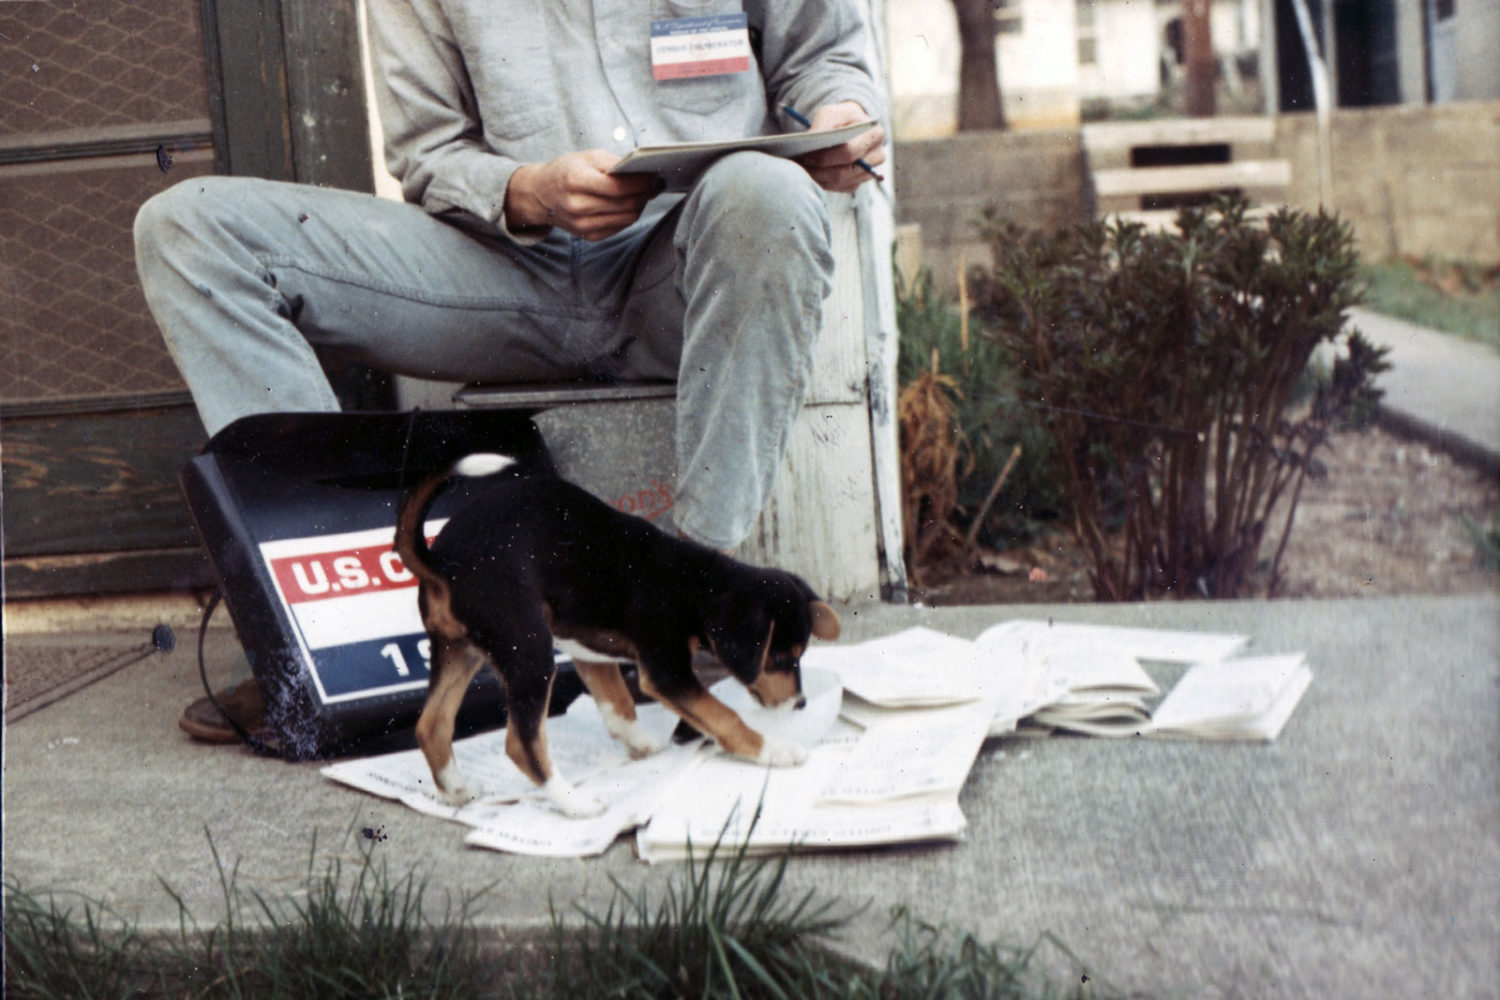 Paul and dog, Andy, taking the 1970 Census in Bloomington, Indiana